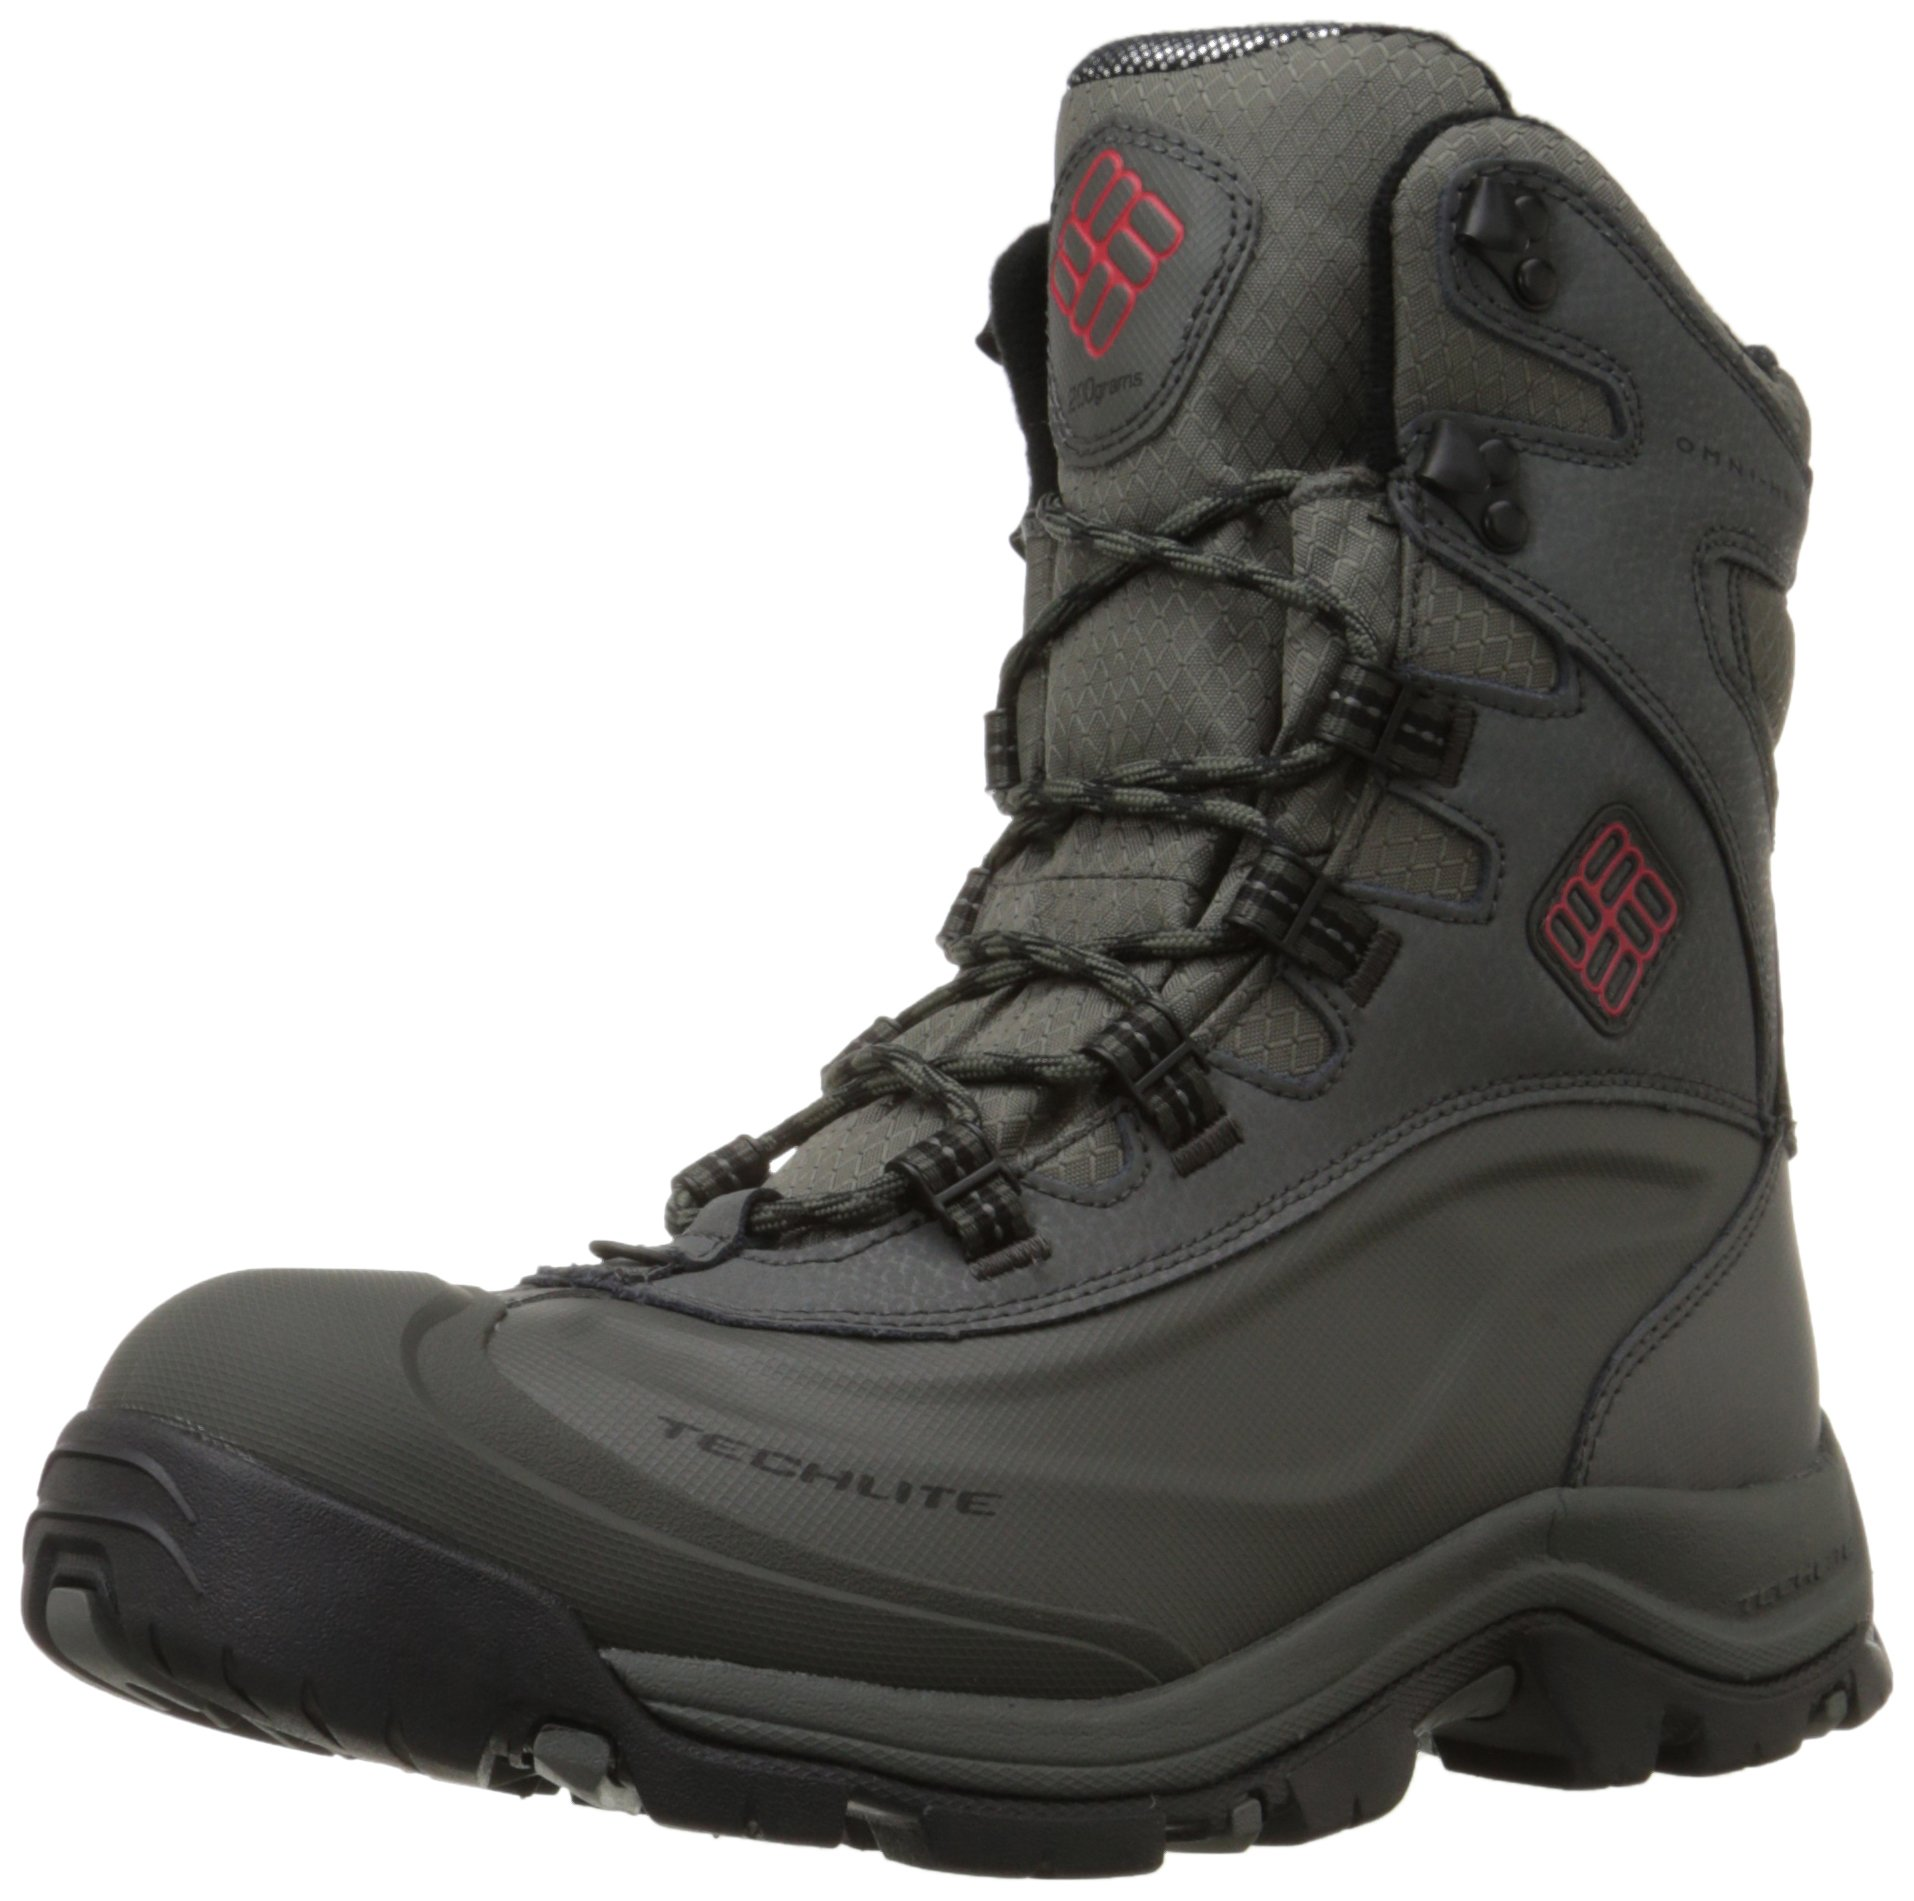 Columbia Men's Bugaboot Plus III Omni Cold Weather Boot, Charcoal/Bright Red, 7.5 D US by Columbia